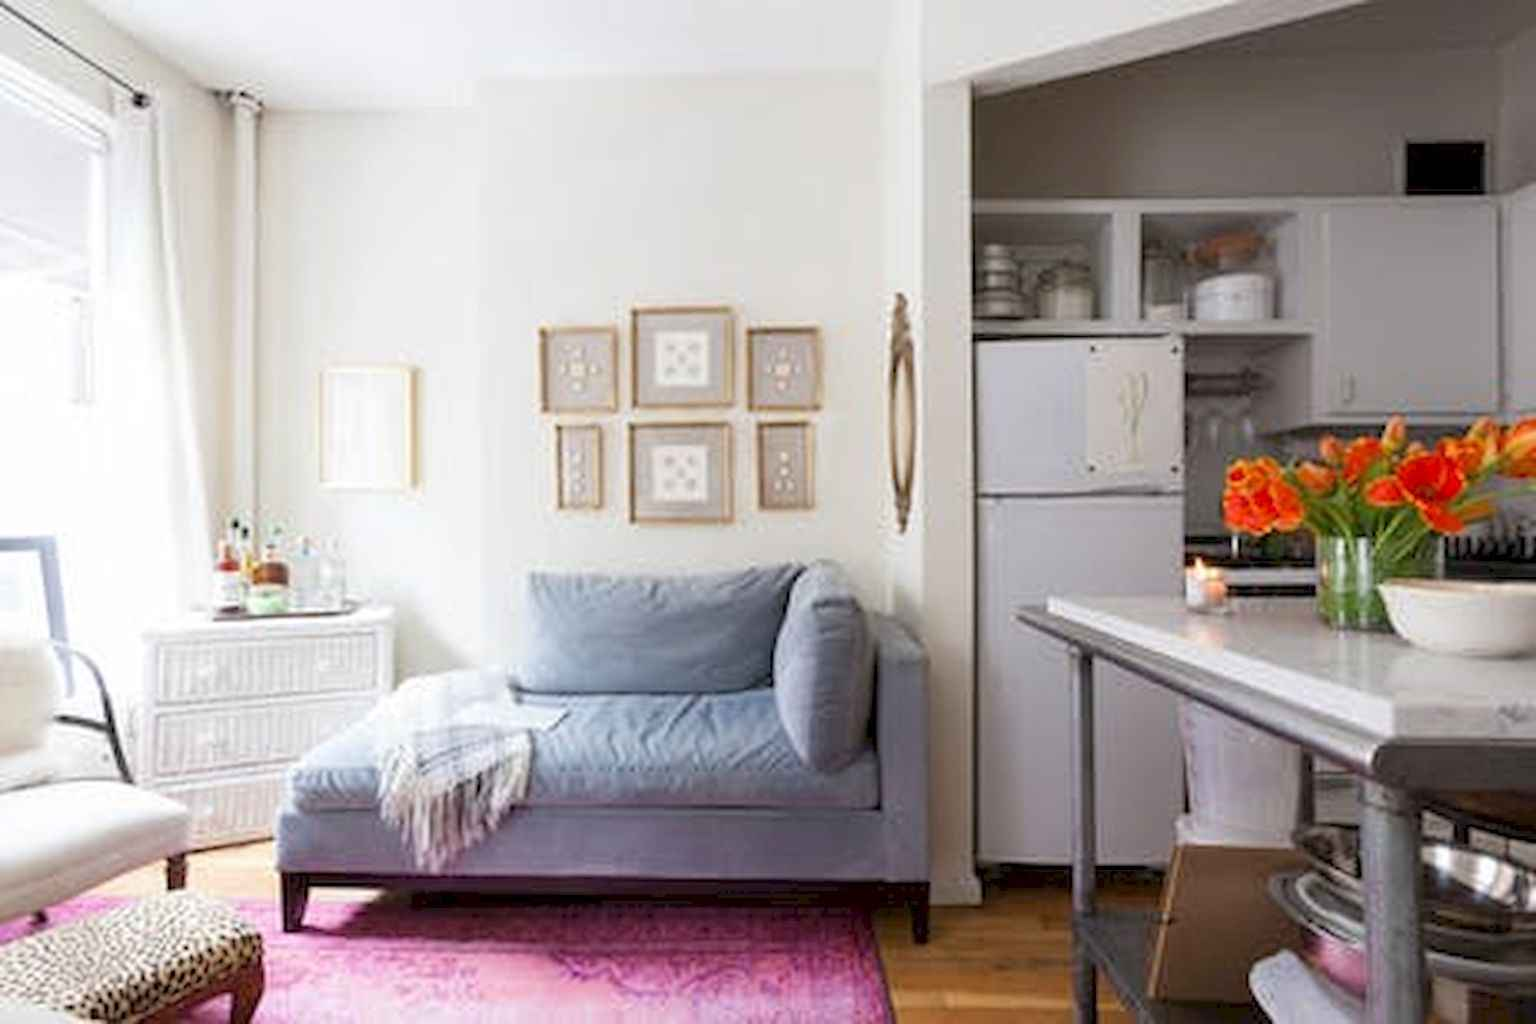 Small apartment studio decorating ideas on a budget (53)